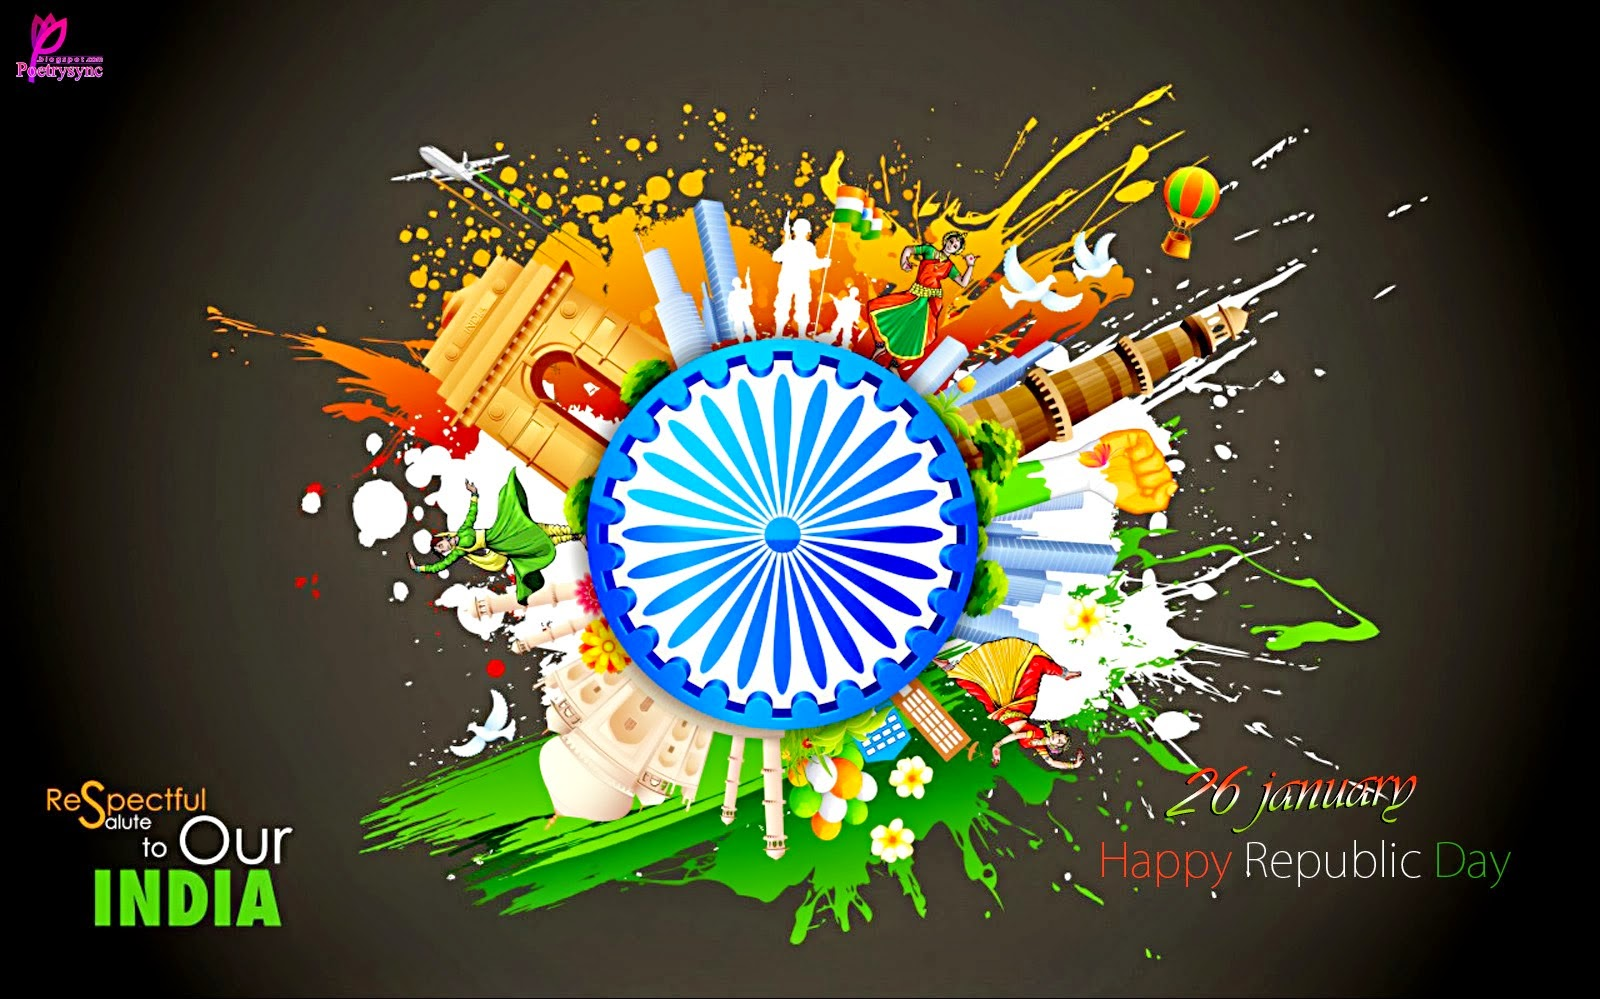 2015 India Republic Day Jan 26 Greetings Messages Wallpaper Whatsapp